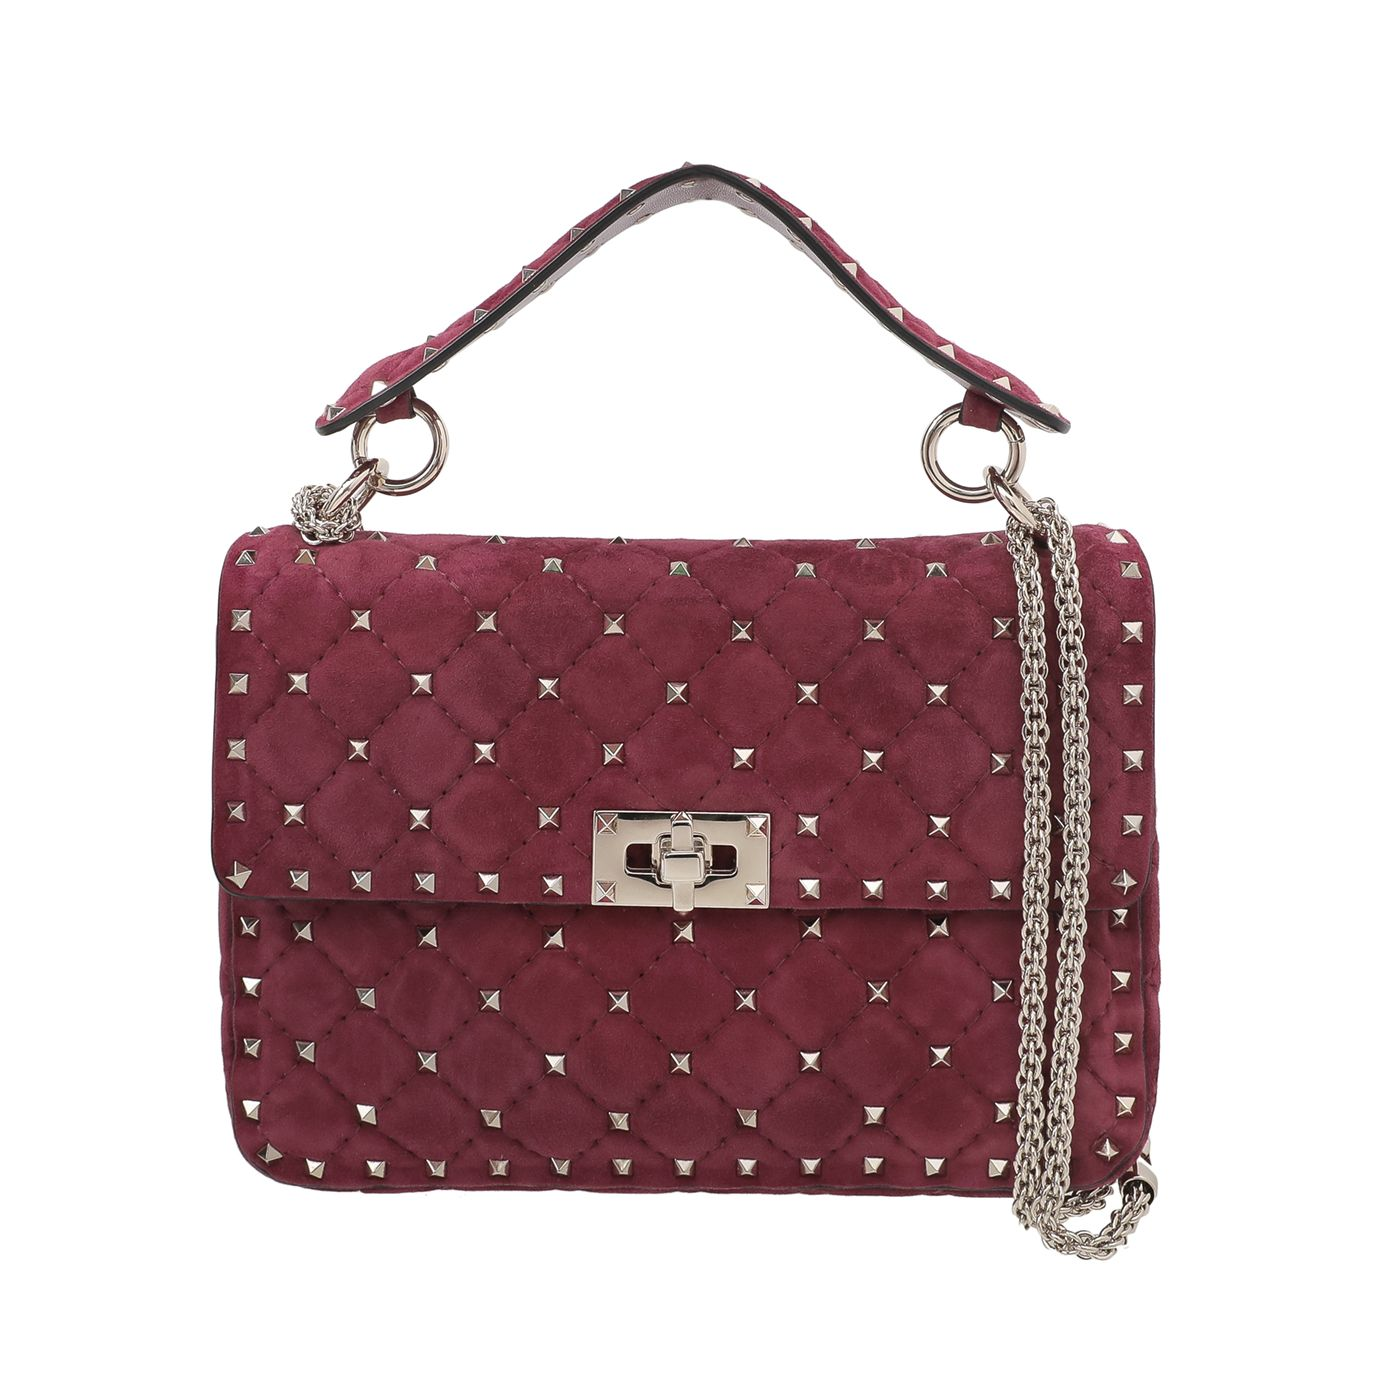 Valentino Light Maroon Suede Rockstud Spike Chain Bag